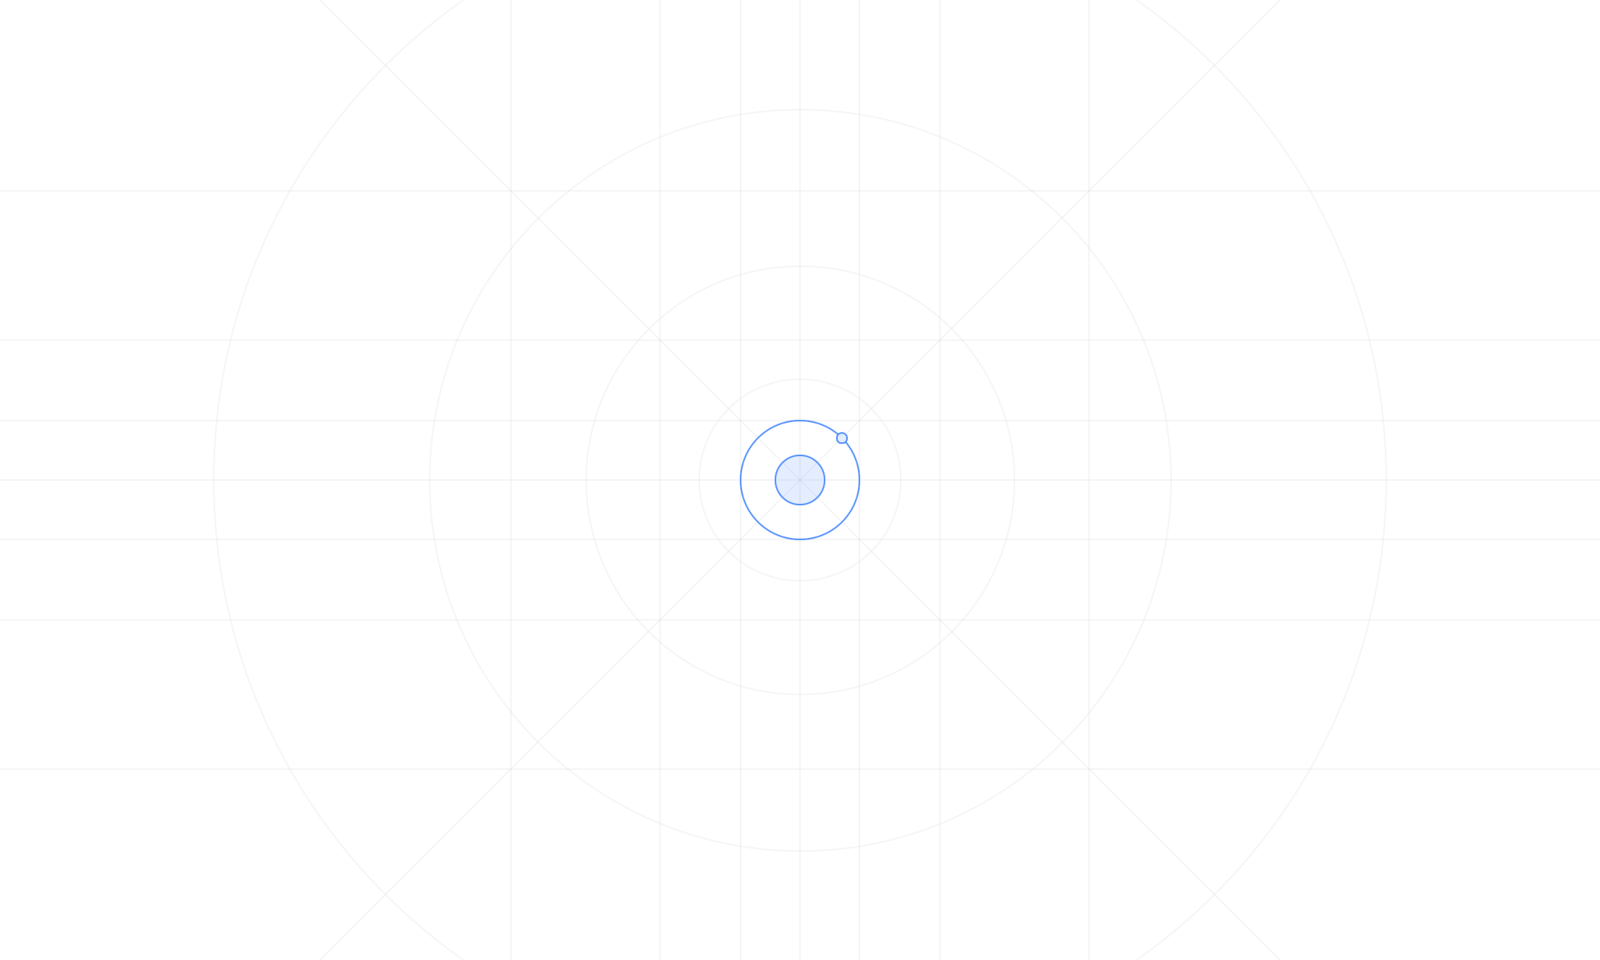 resources/android/splash/drawable-land-xxhdpi-screen.png